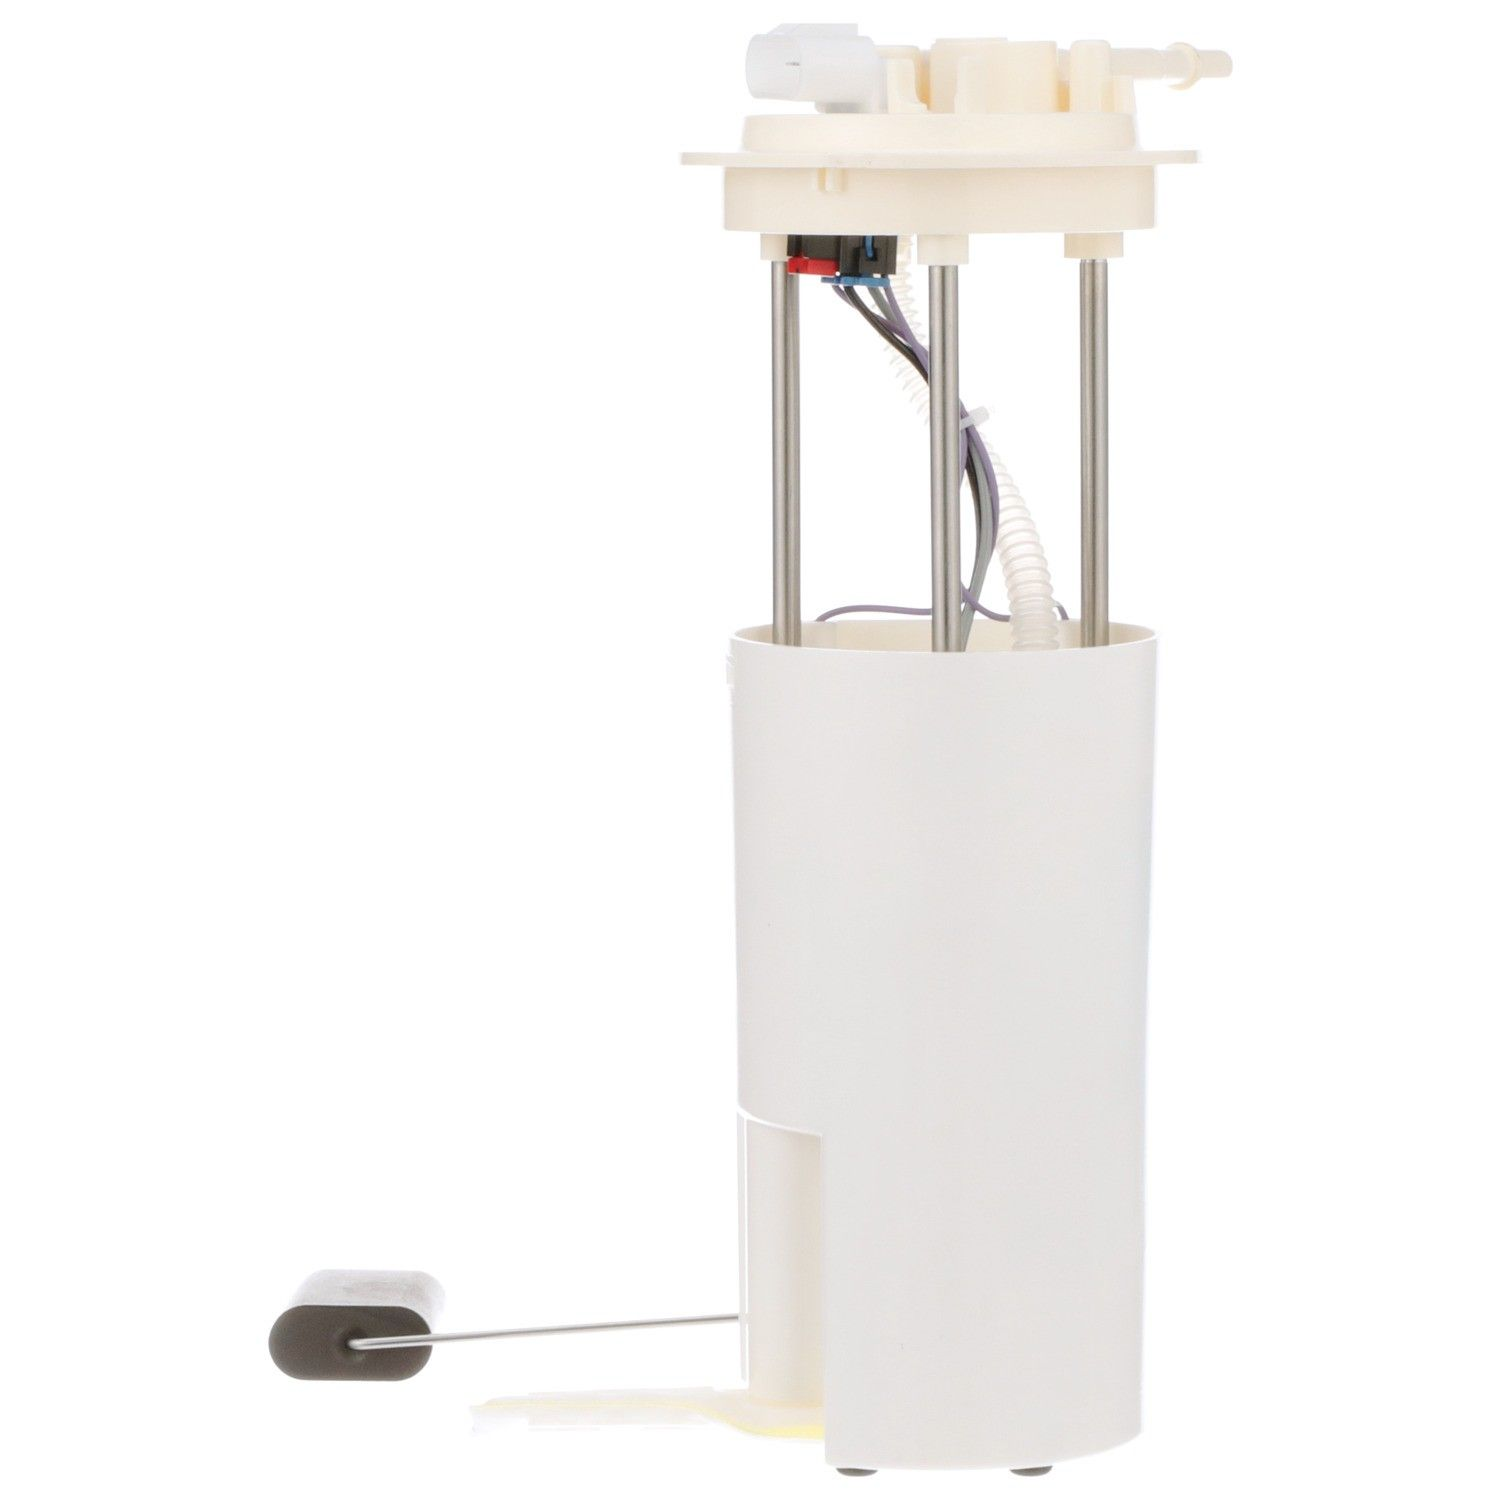 Gmc Yukon Fuel Pump Module Assembly Replacement Acdelco Airtex 2008 Wiring 1995 8 Cyl 57l Delphi Fg0038 Strainer Is Inside The Once New Has Been Installed And